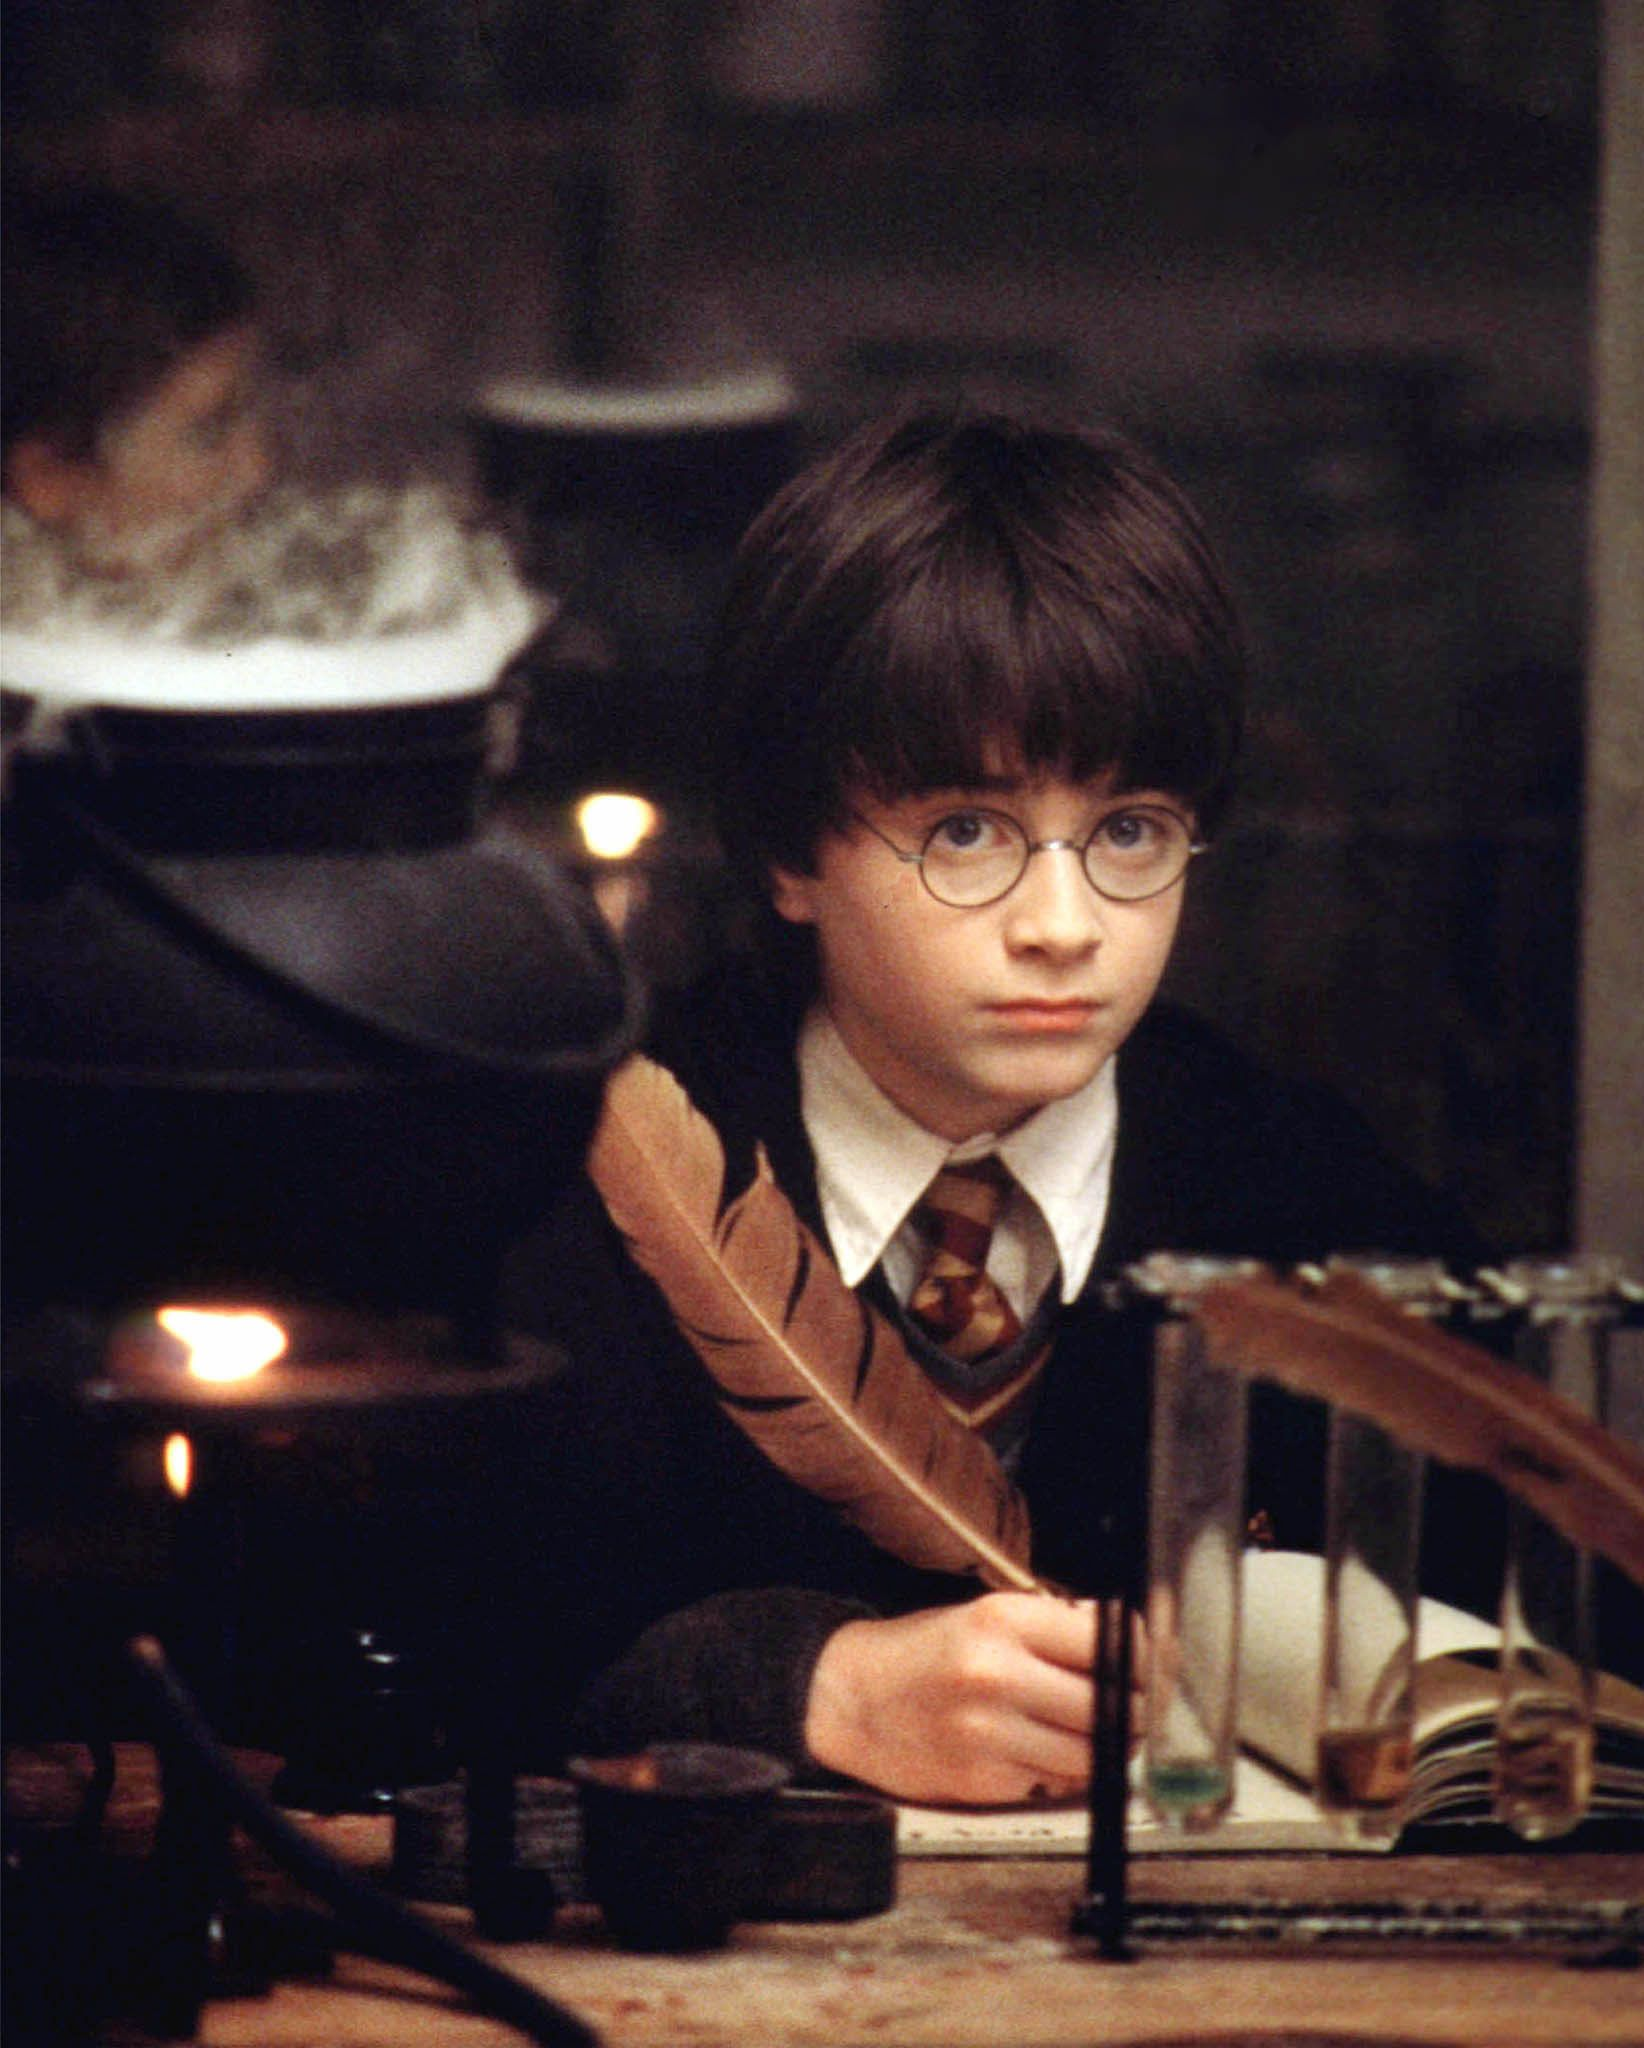 "Actor Daniel Radcliffe is pictured as the title character in Warner Bros. new film ""Harry Potter and the Sorcerer's Stone"" which makes its world debut in London on November 4, 2001. The film, which is called ""Harry Potter and the Philosopher's Stone"" in the UK, is based on the book by British author J.K. Rowling.   (CREDIT REUTERS/Peter Mountain/Warner Bros.)"